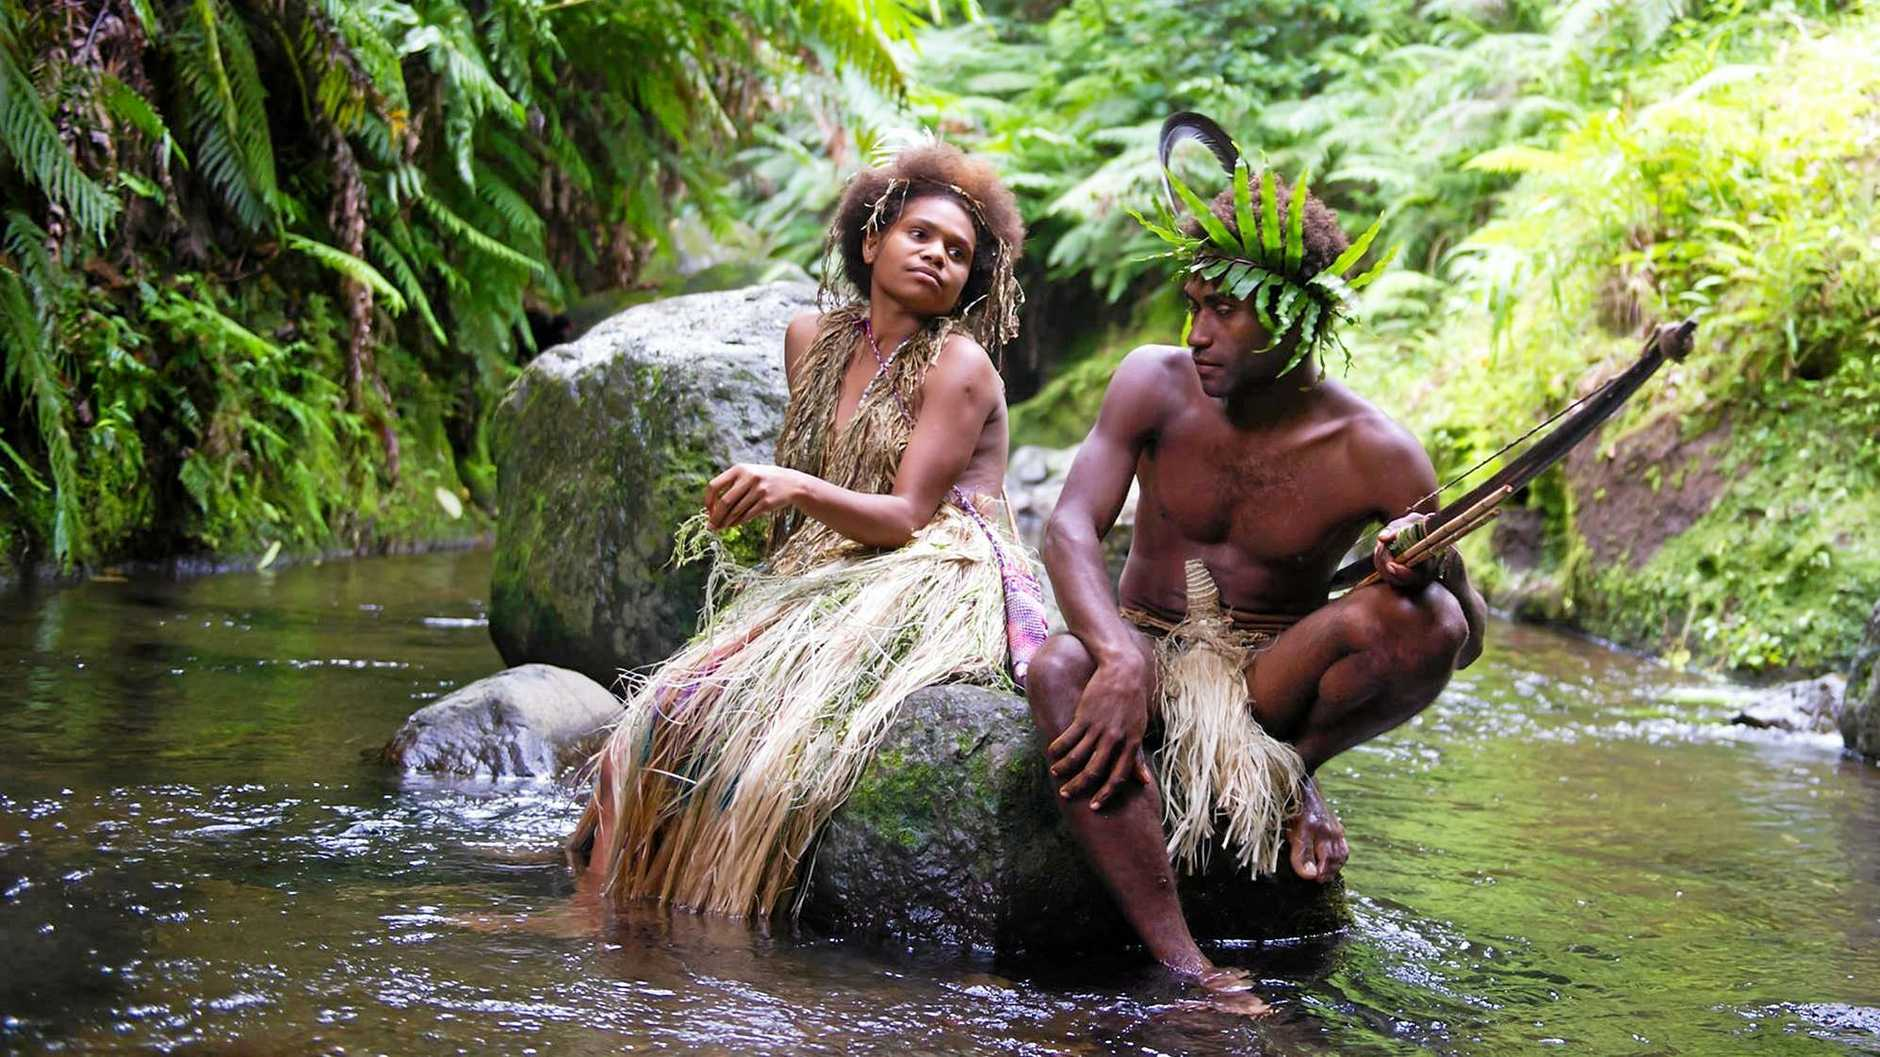 Some of the workers appeared in the film Tanna, which traces a love story on the tropical Vanuatuan island.